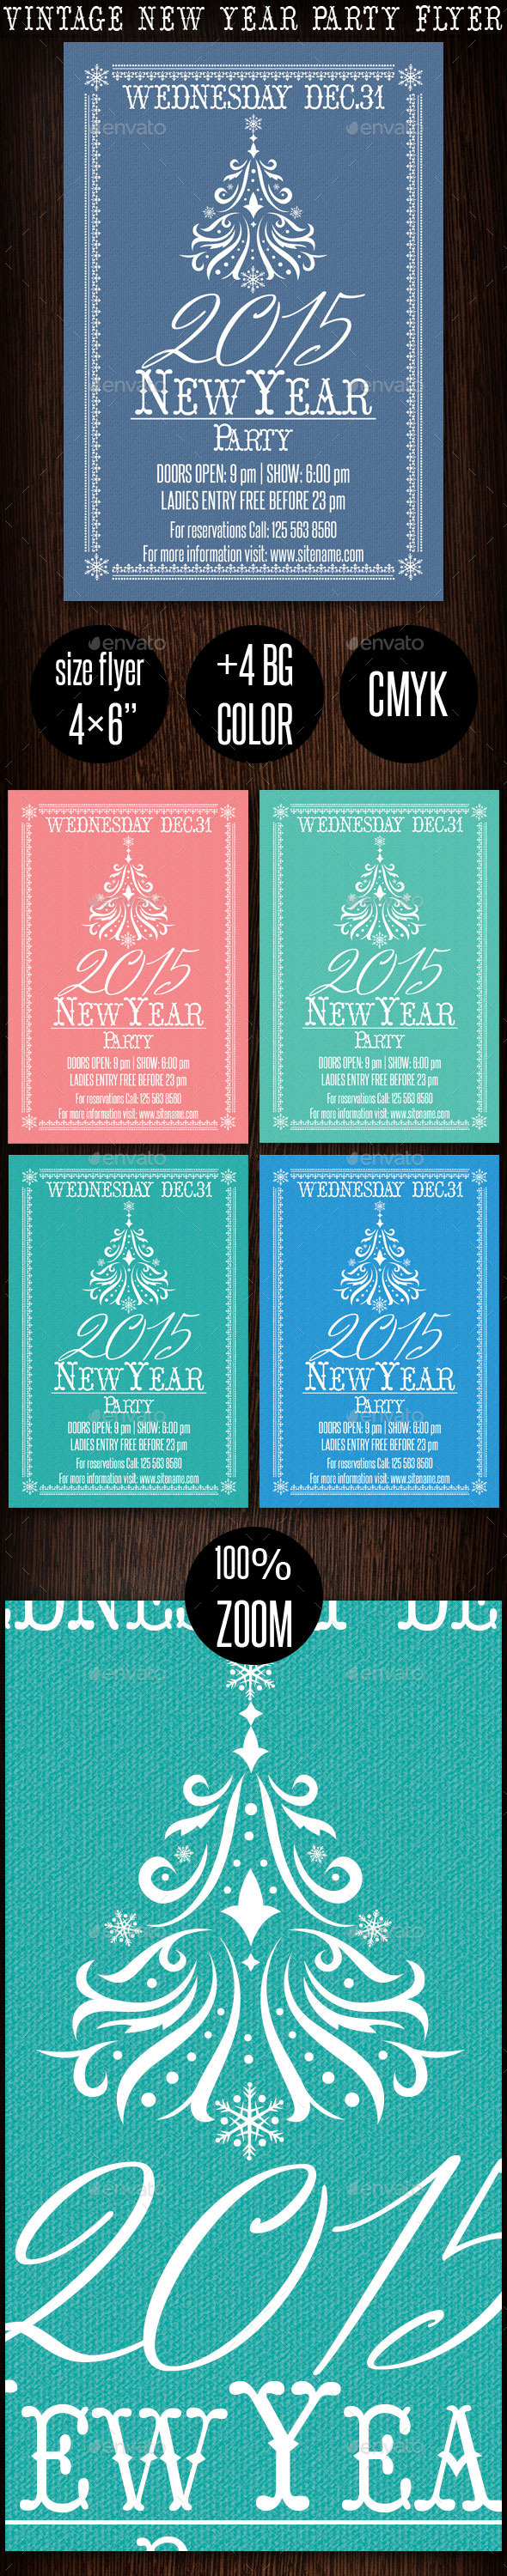 GraphicRiver Vintage New Year Party Flyer 2015 9787479